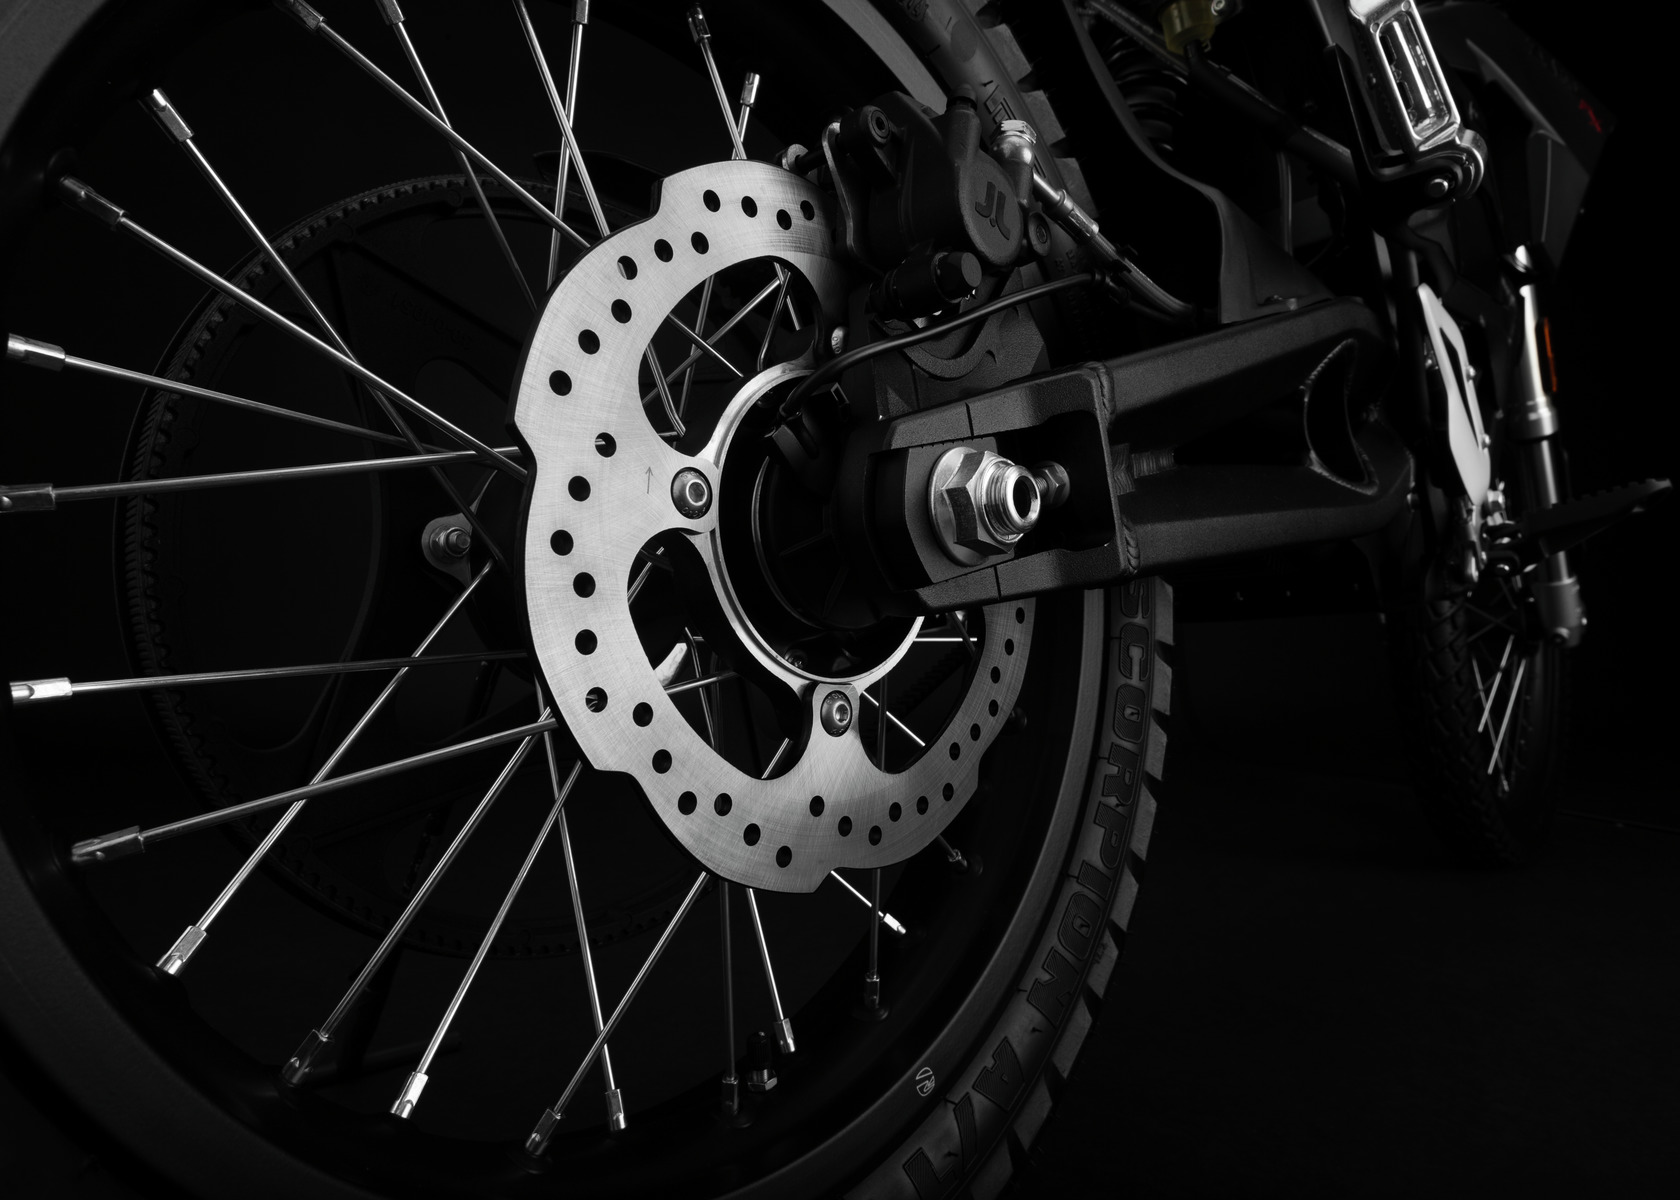 2016 Zero FX Electric Motorcycle: Rear Brake